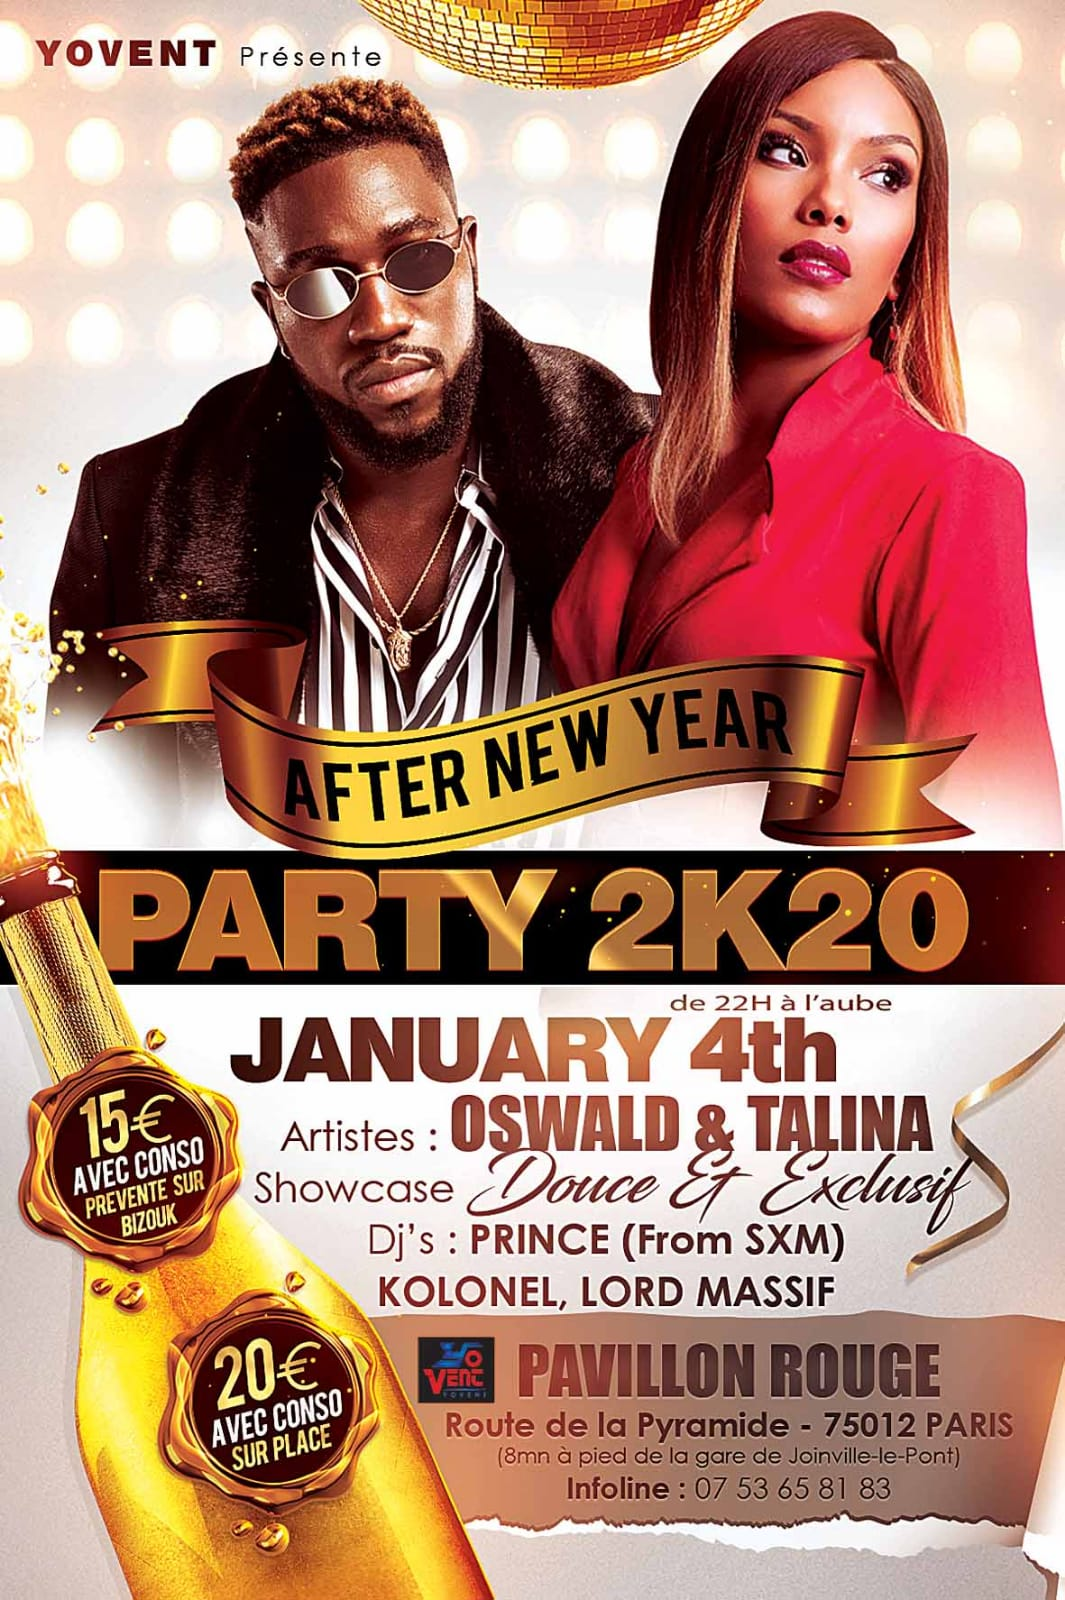 AFTER NEW YEAR PARTY 2K20